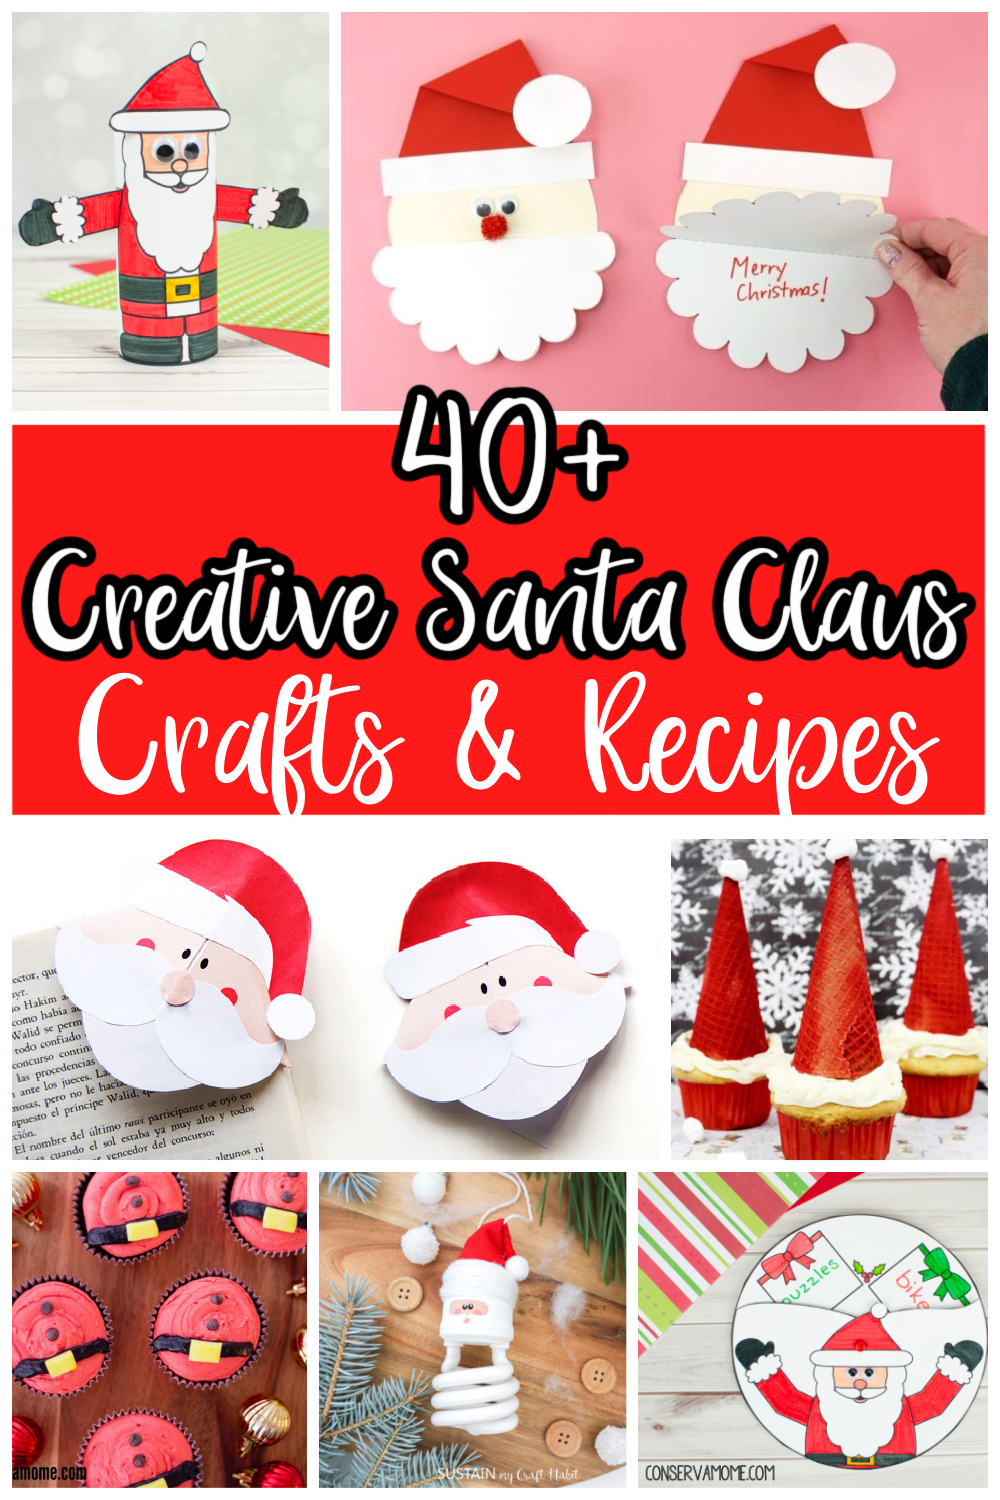 If you love Santa Claus like we do then you've come to the right place. I've put together over a fun round up of Fun & Creative Santa Claus Crafts & Recipes. These are the perfect activities to celebrate everything Father Christmas.  Keep reading to check out over 40 Santa Claus Activities for your kids!